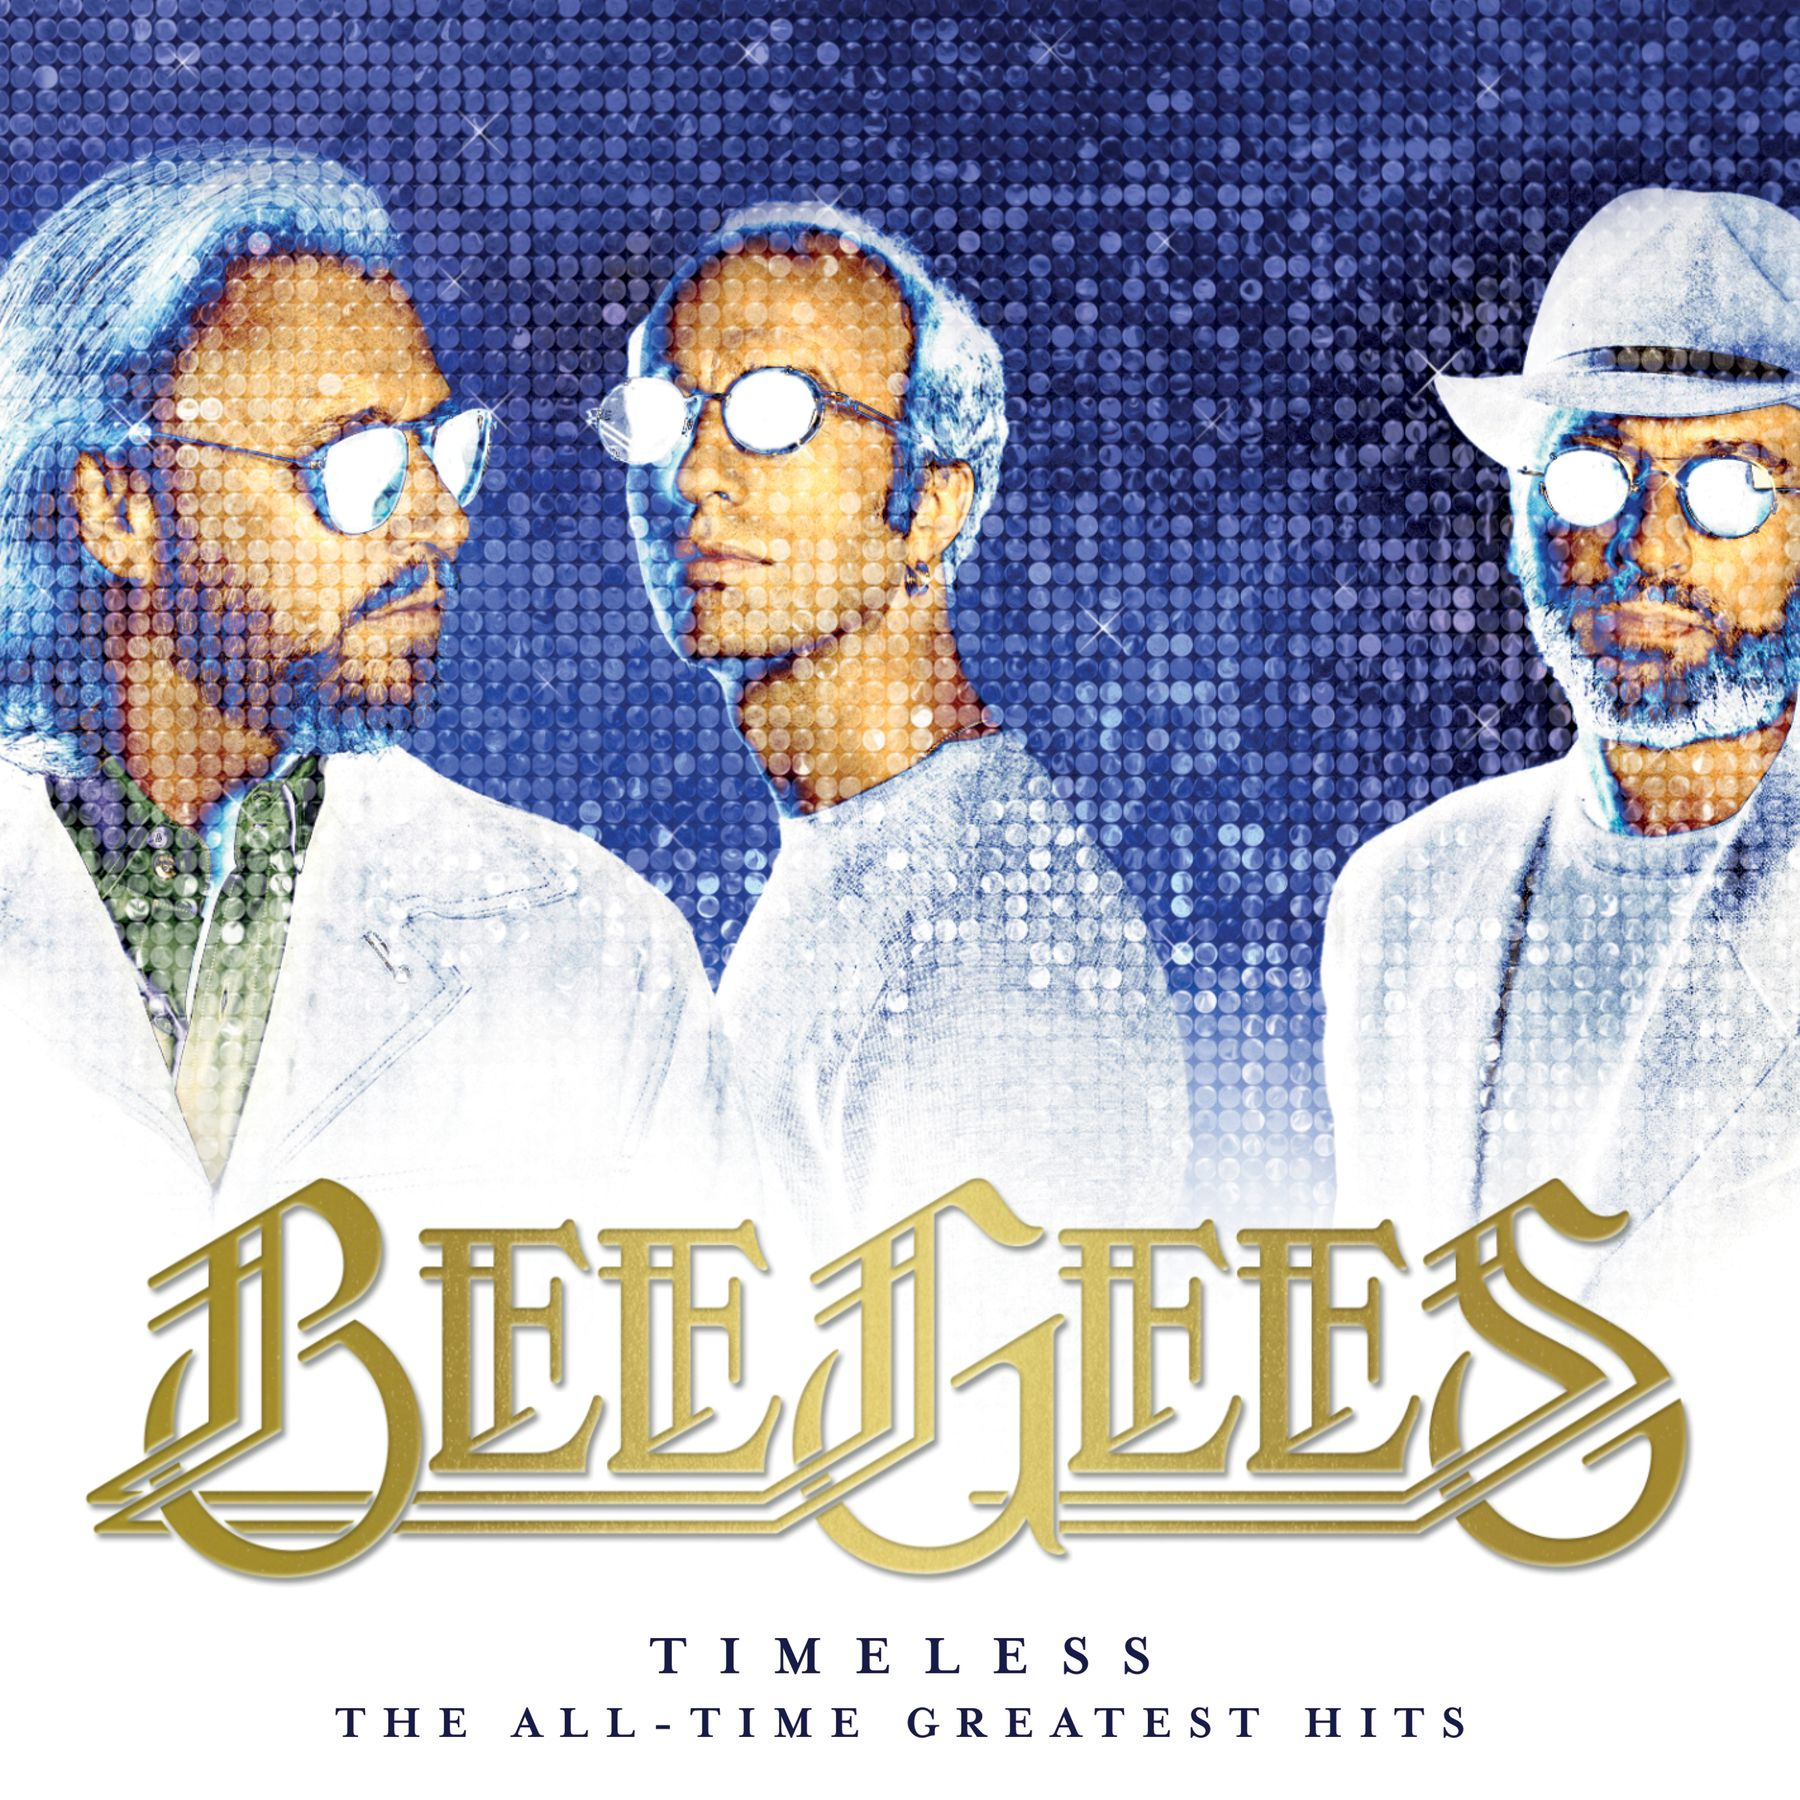 Bee Gees - Timeless: The All-time Greatest Hits album cover